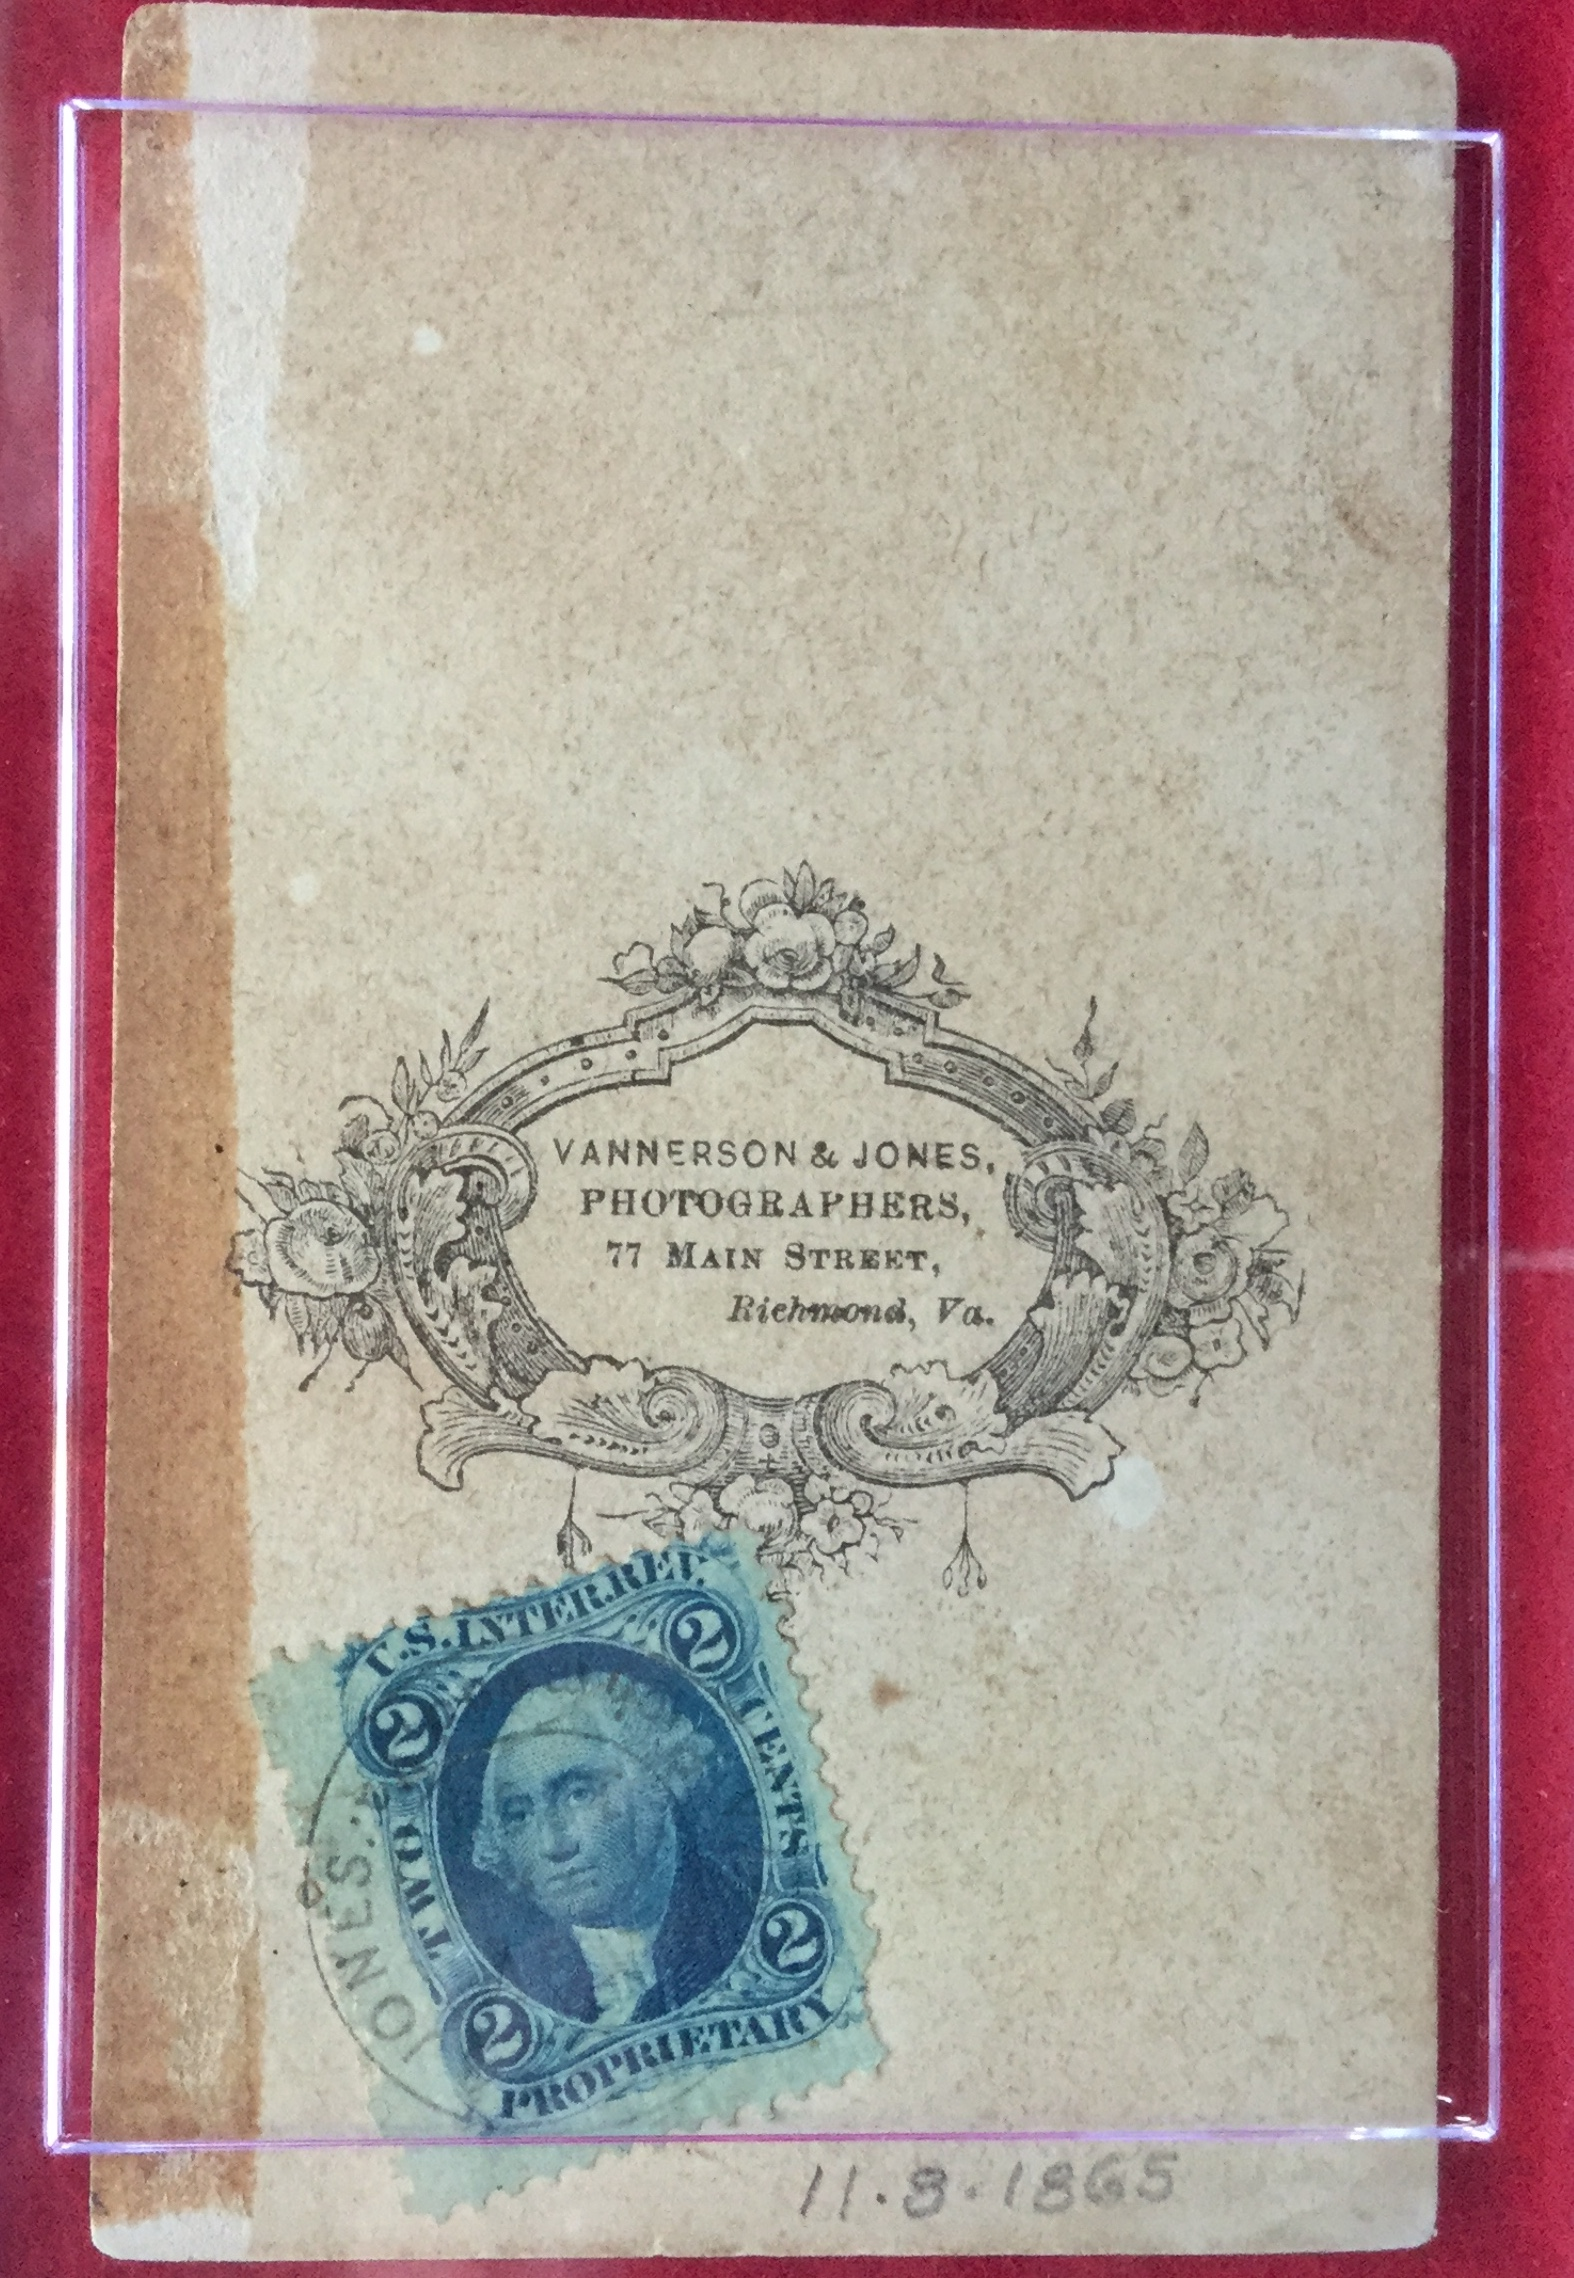 Vannerson & Jones Photographers & U.S. Tax Stamp